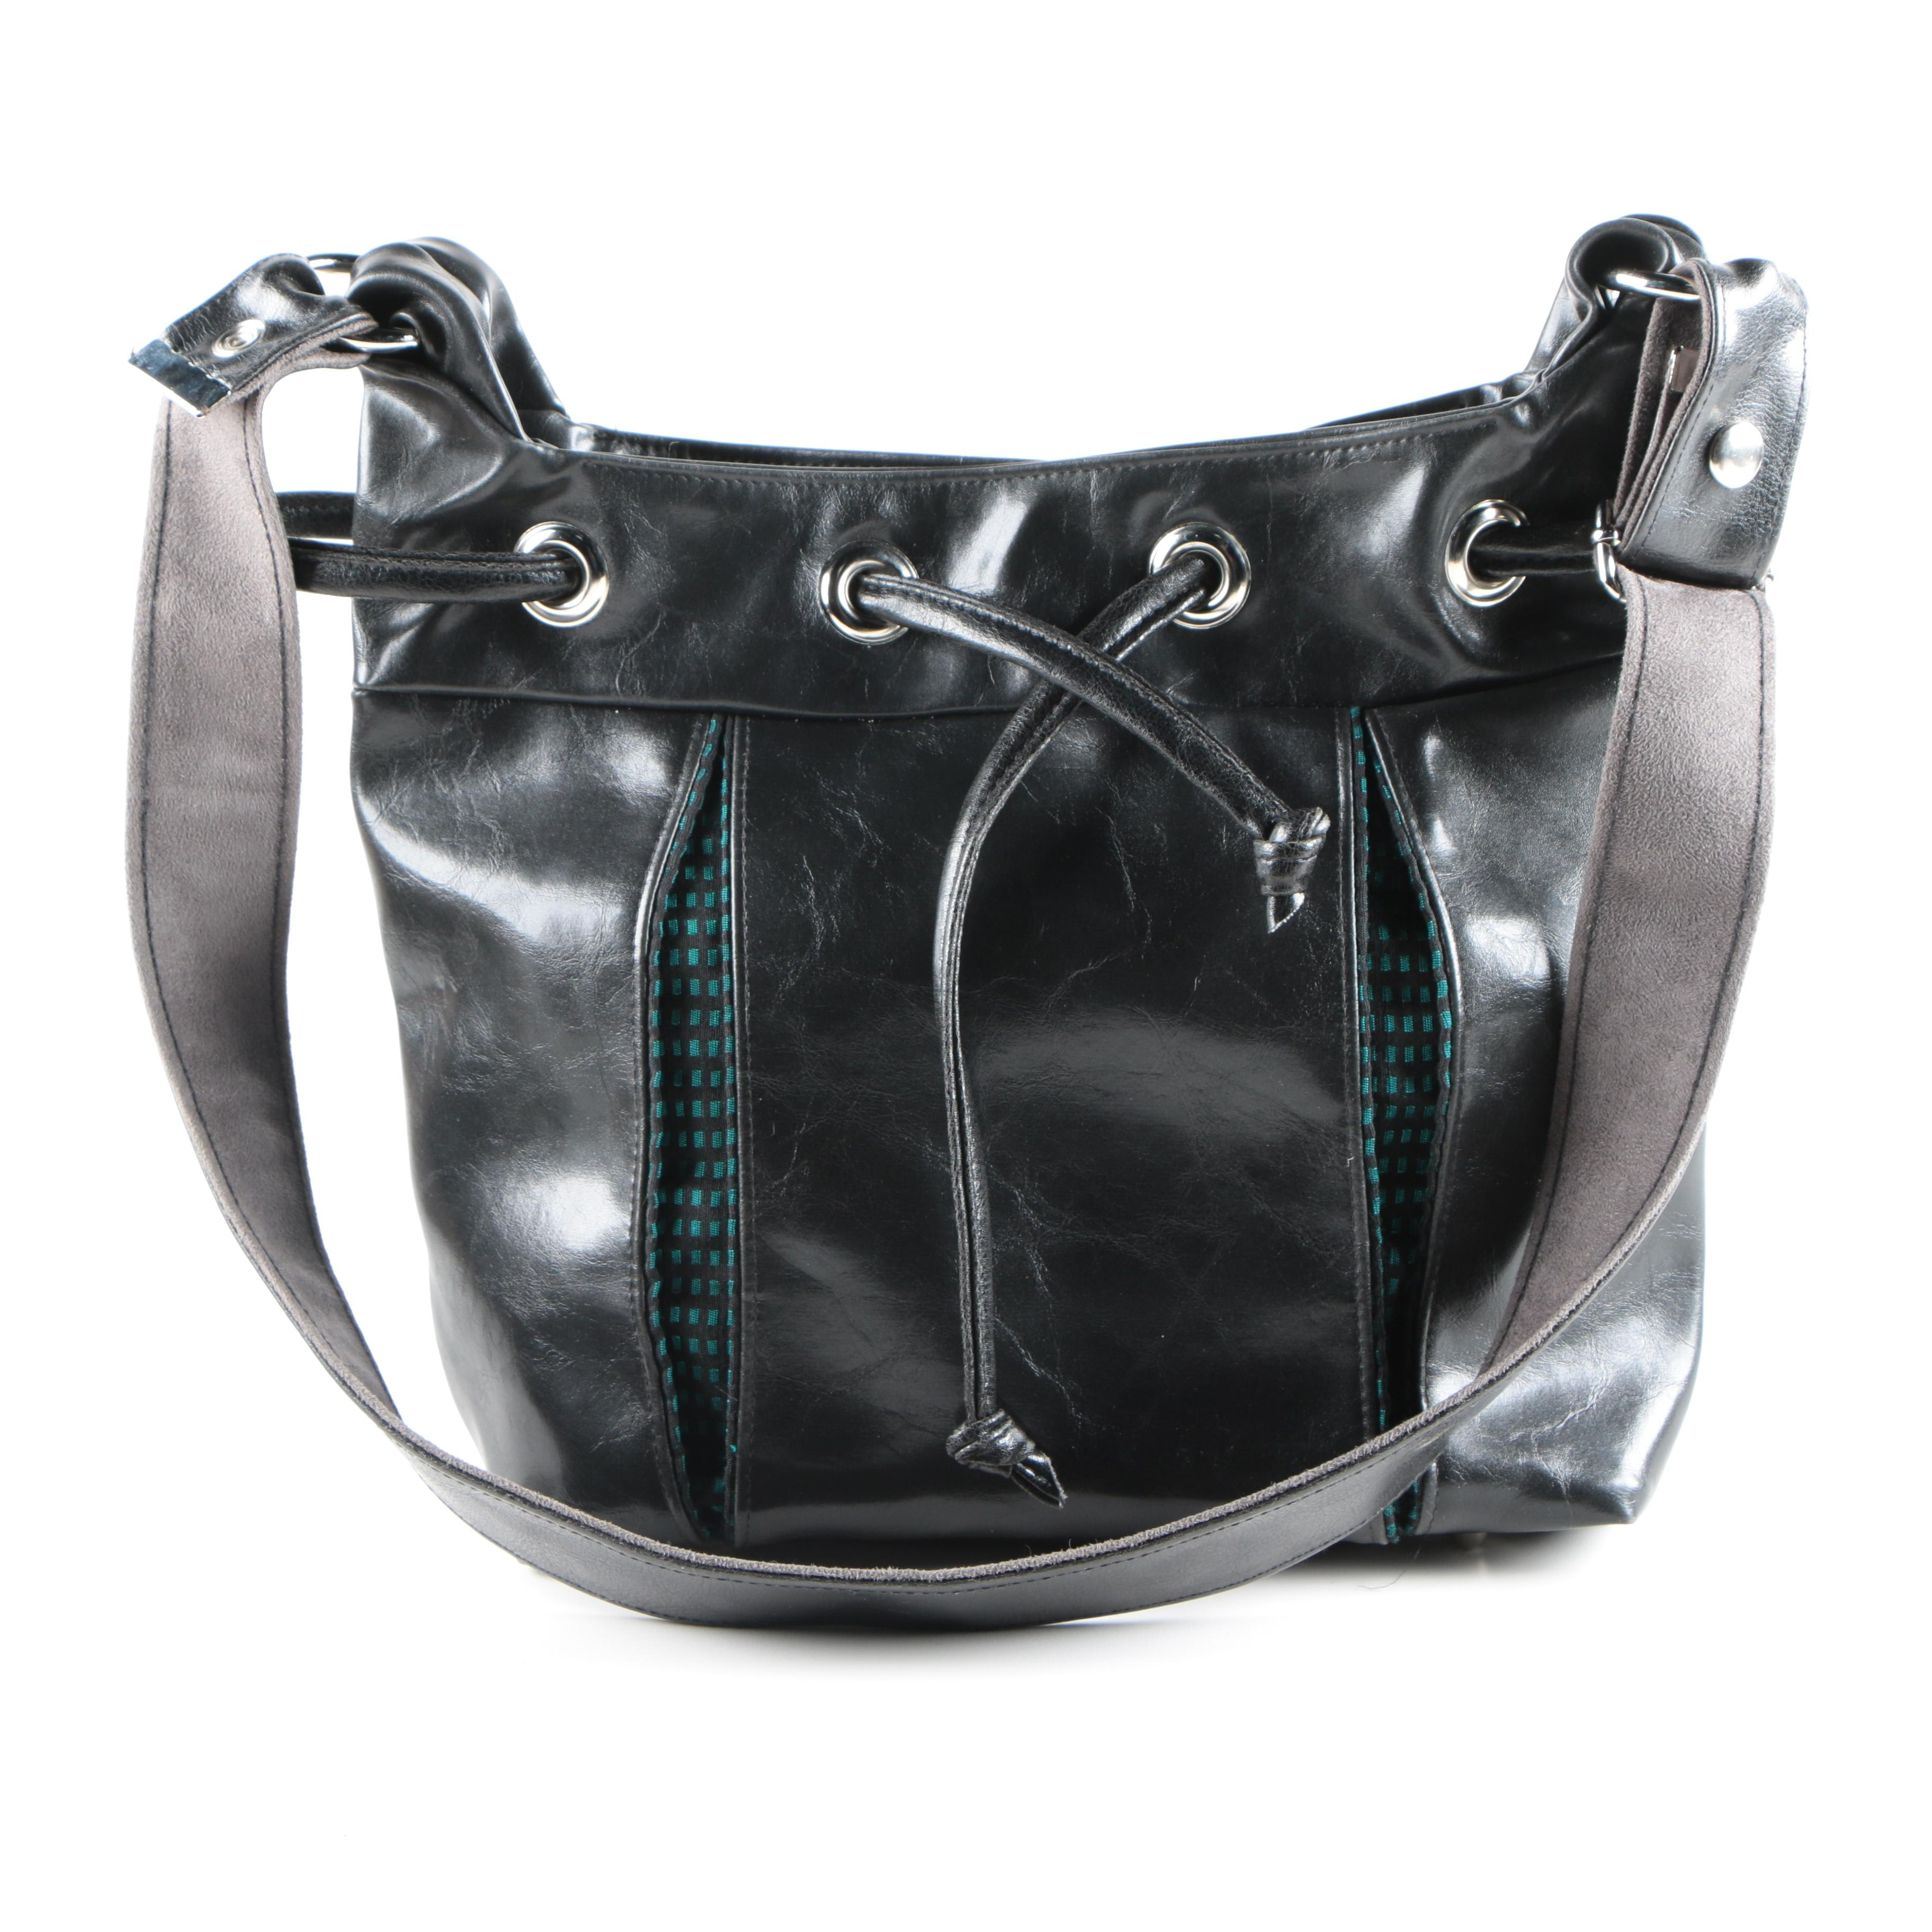 Crystalyn Kae Black Leather Shoulder Bag